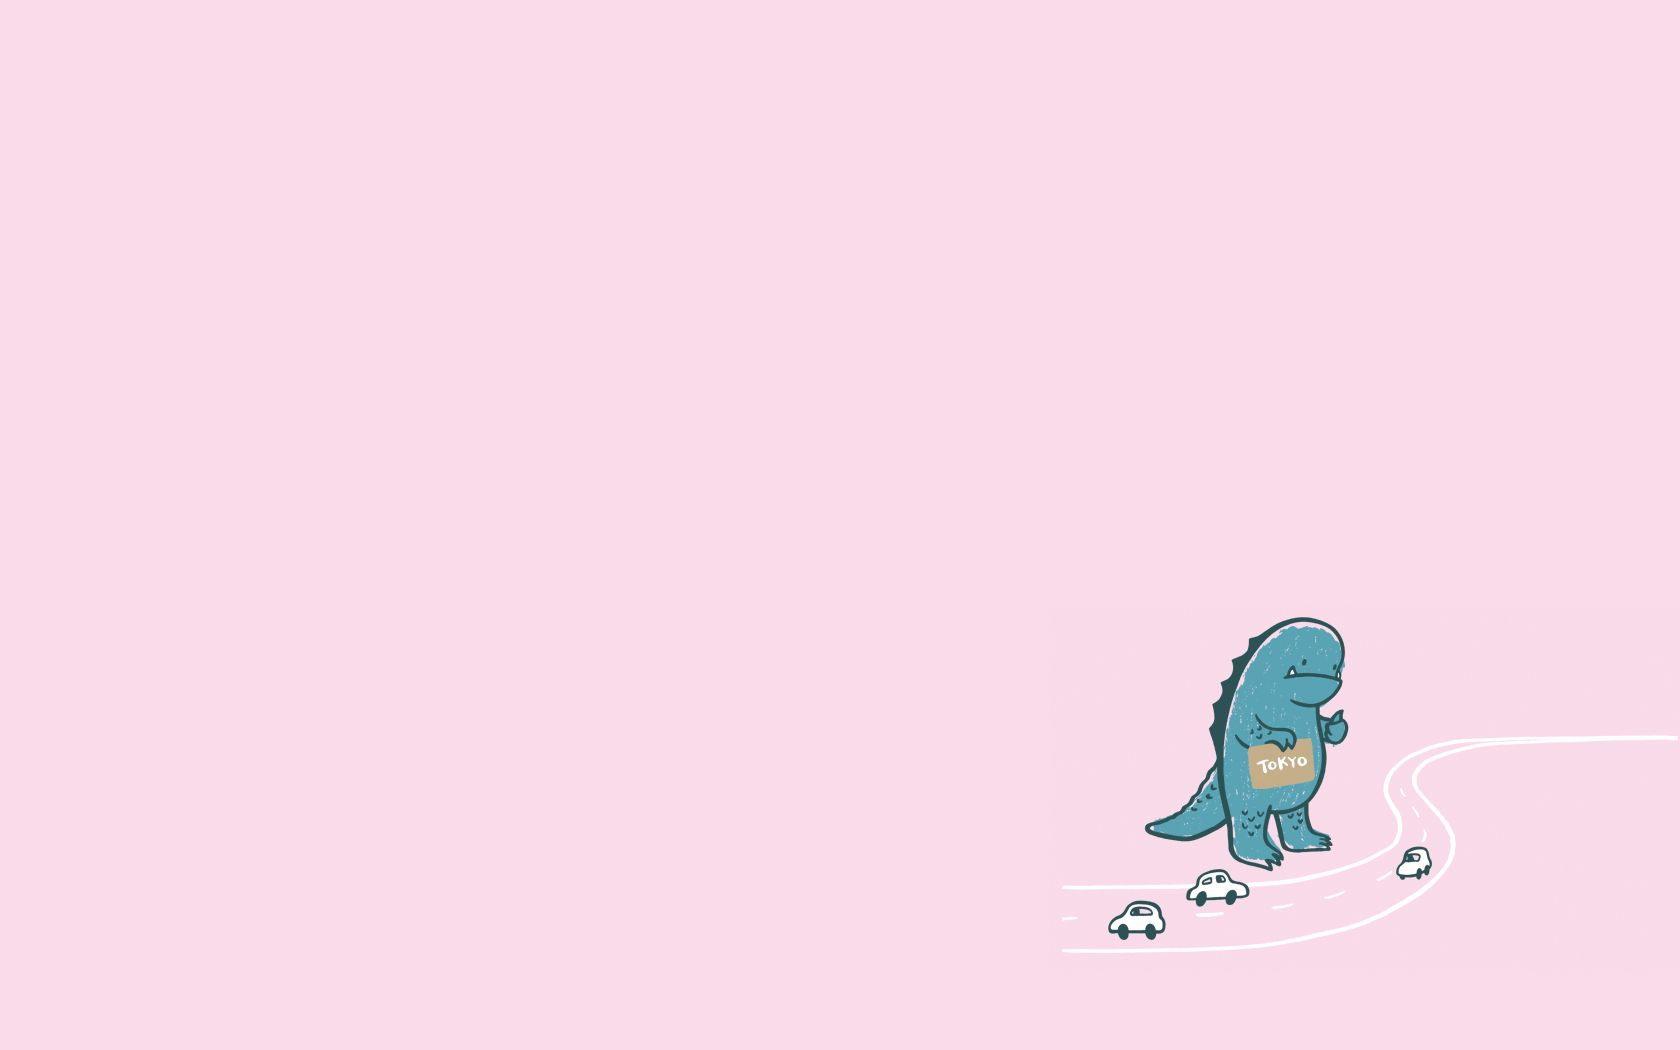 Godzilla Cute laptop wallpaper Cute desktop wallpaper Cartoon 1680x1050